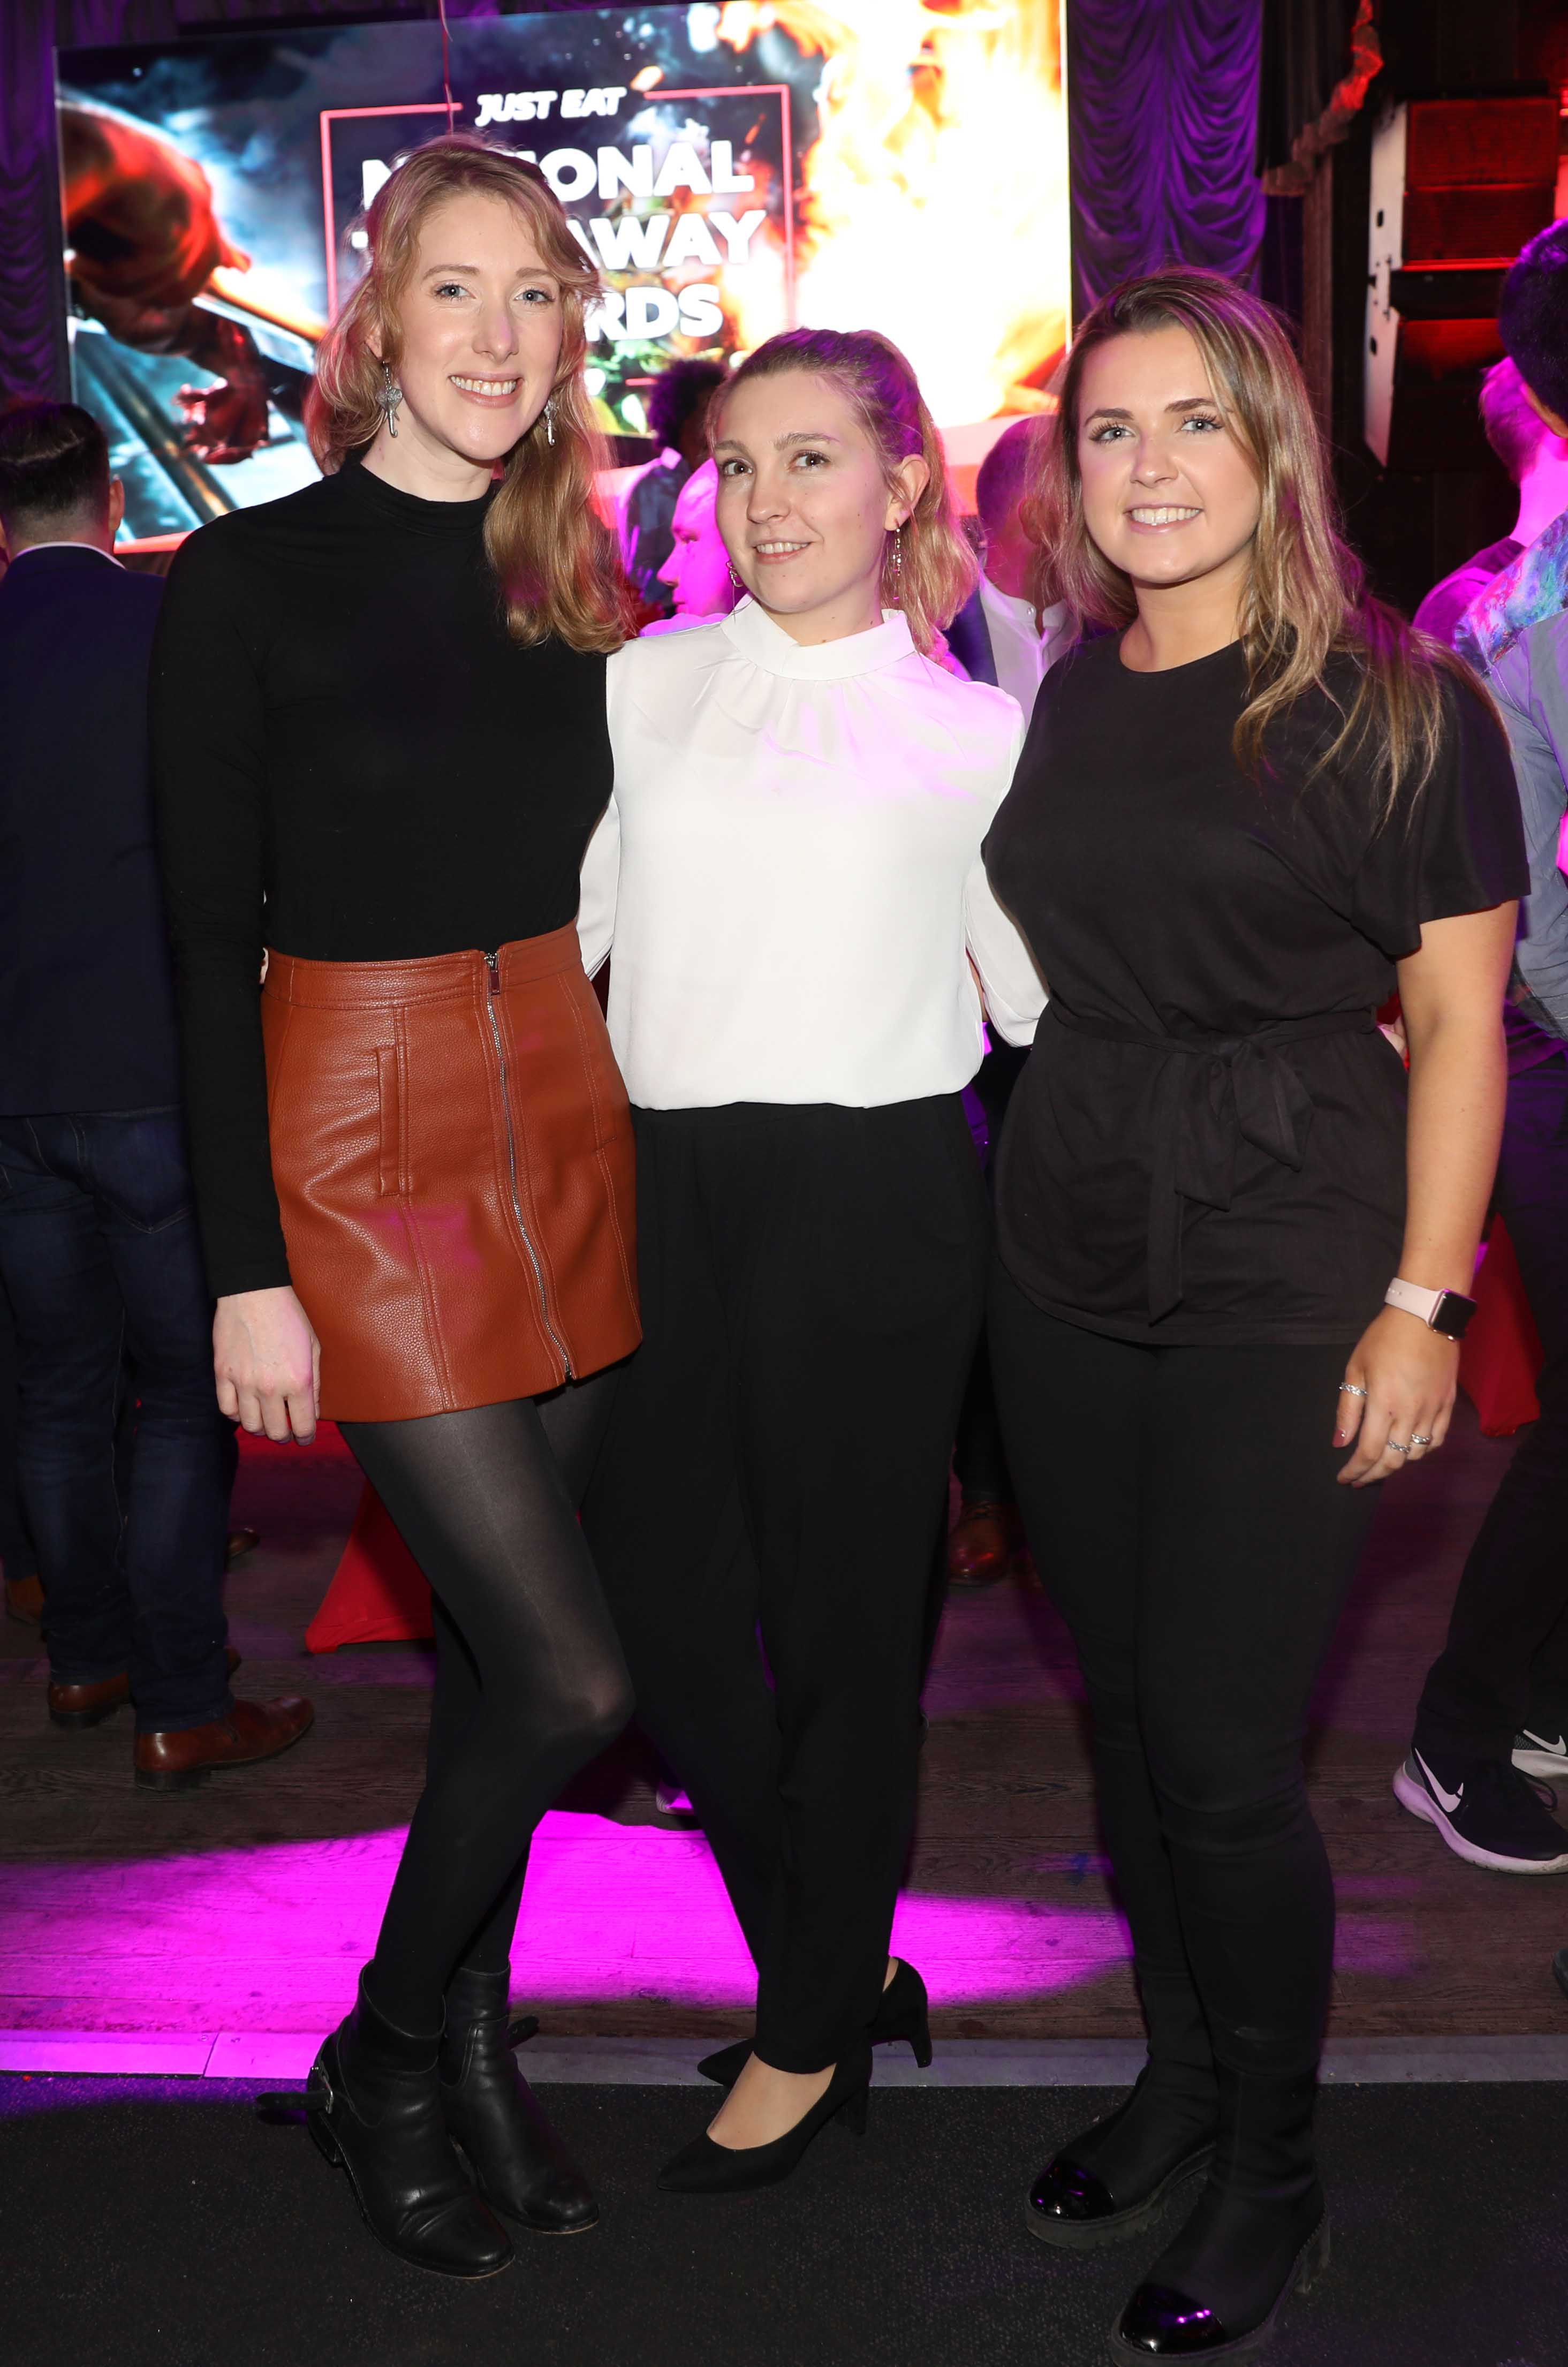 Pictured last night were Audrey Brewer, Autumn Guillott and Katie Gribeen at the sixth annual Just Eat National Takeaway Awards in Dublin's Twenty Two. Photograph: Leon Farrell / Photocall Ireland